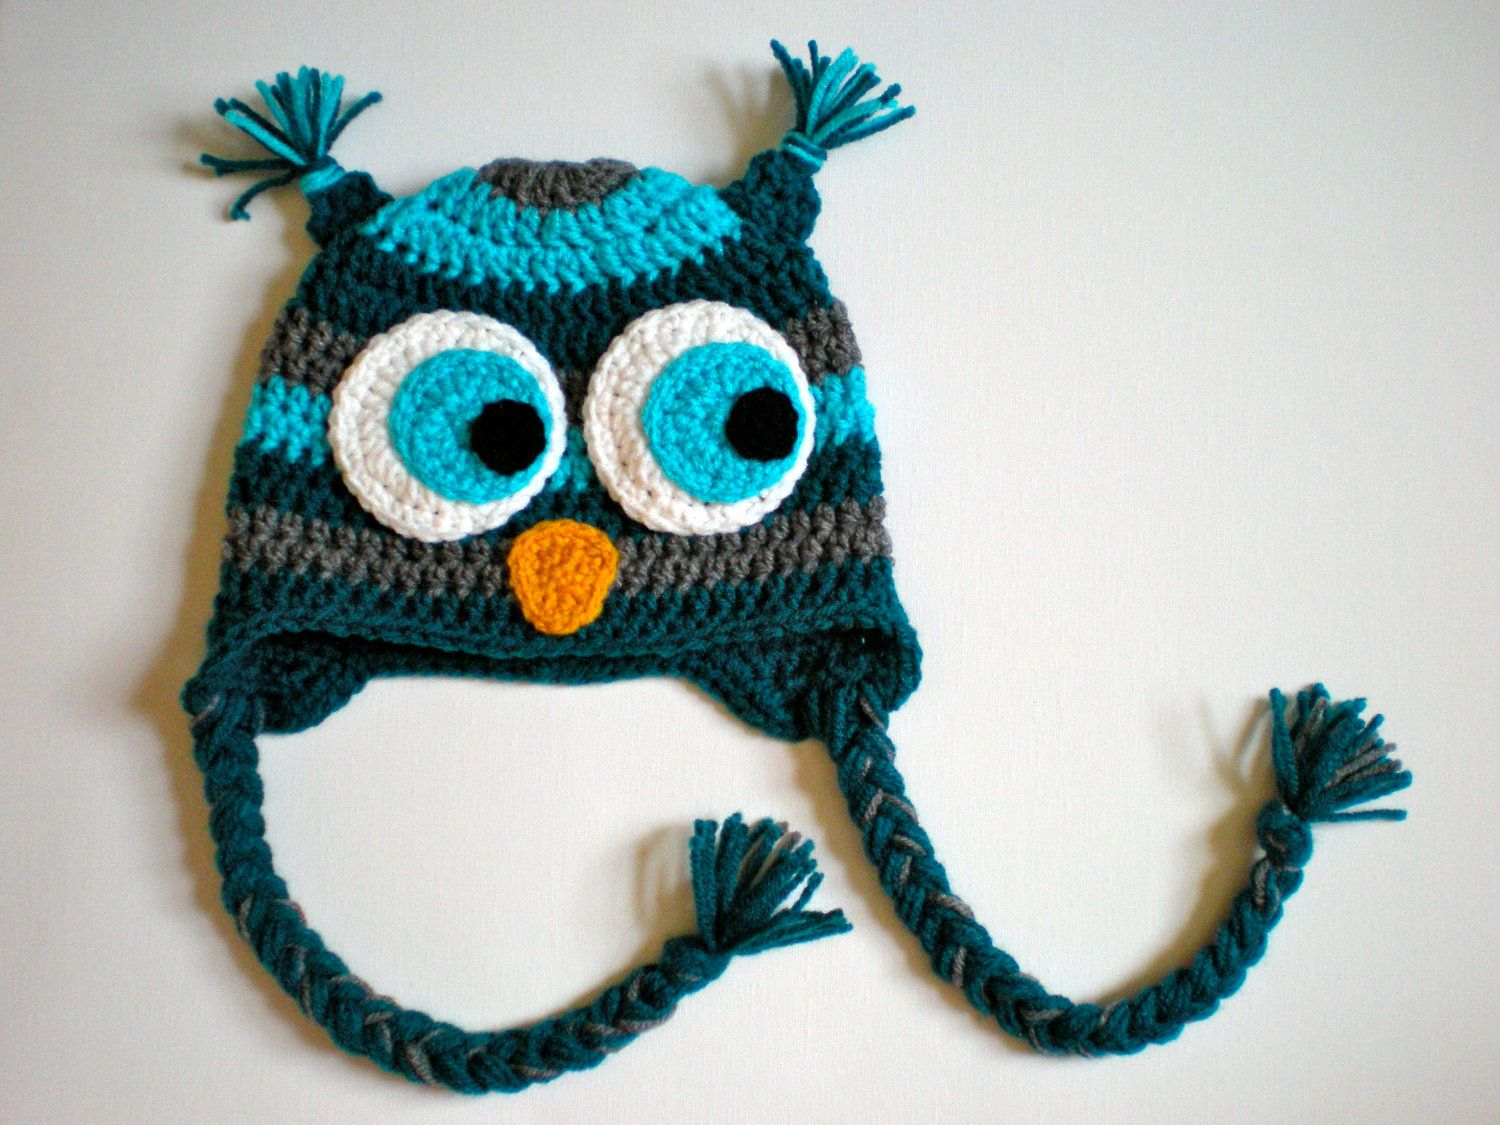 Pattern striped owl hat size newborn to adult baby hat kid hat pattern striped owl hat size newborn to adult baby hat kid hat animal hat easy crochet pdf instant download permission to sell bankloansurffo Image collections